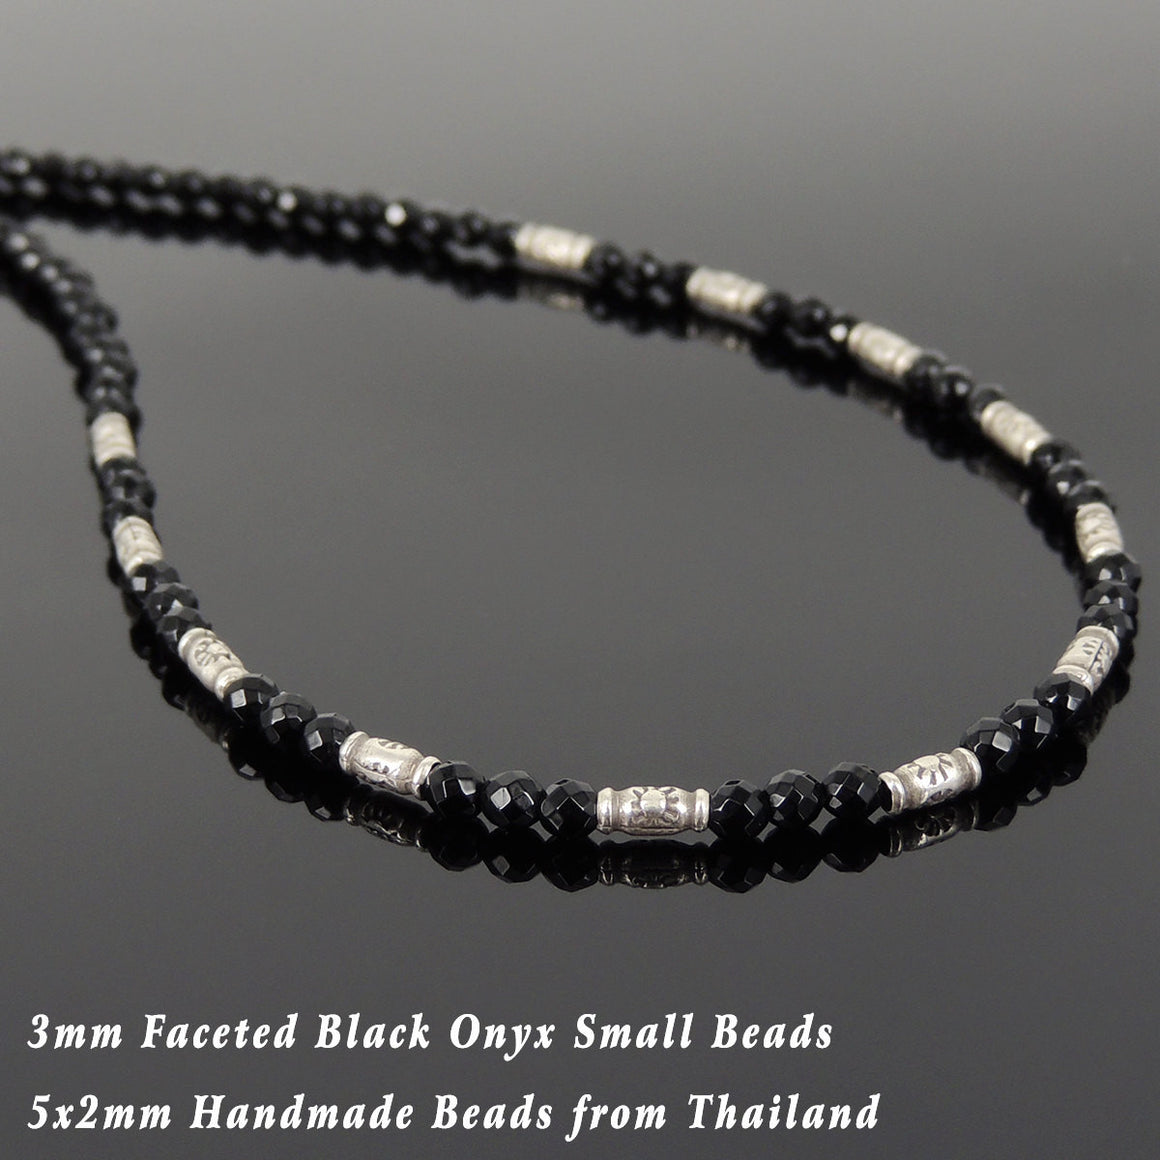 3mm Faceted Black Onyx Healing Gemstone Necklace with S925 Sterling Silver Vintage Sun Barrel Beads & Clasp - Handmade by Gem & Silver NK137